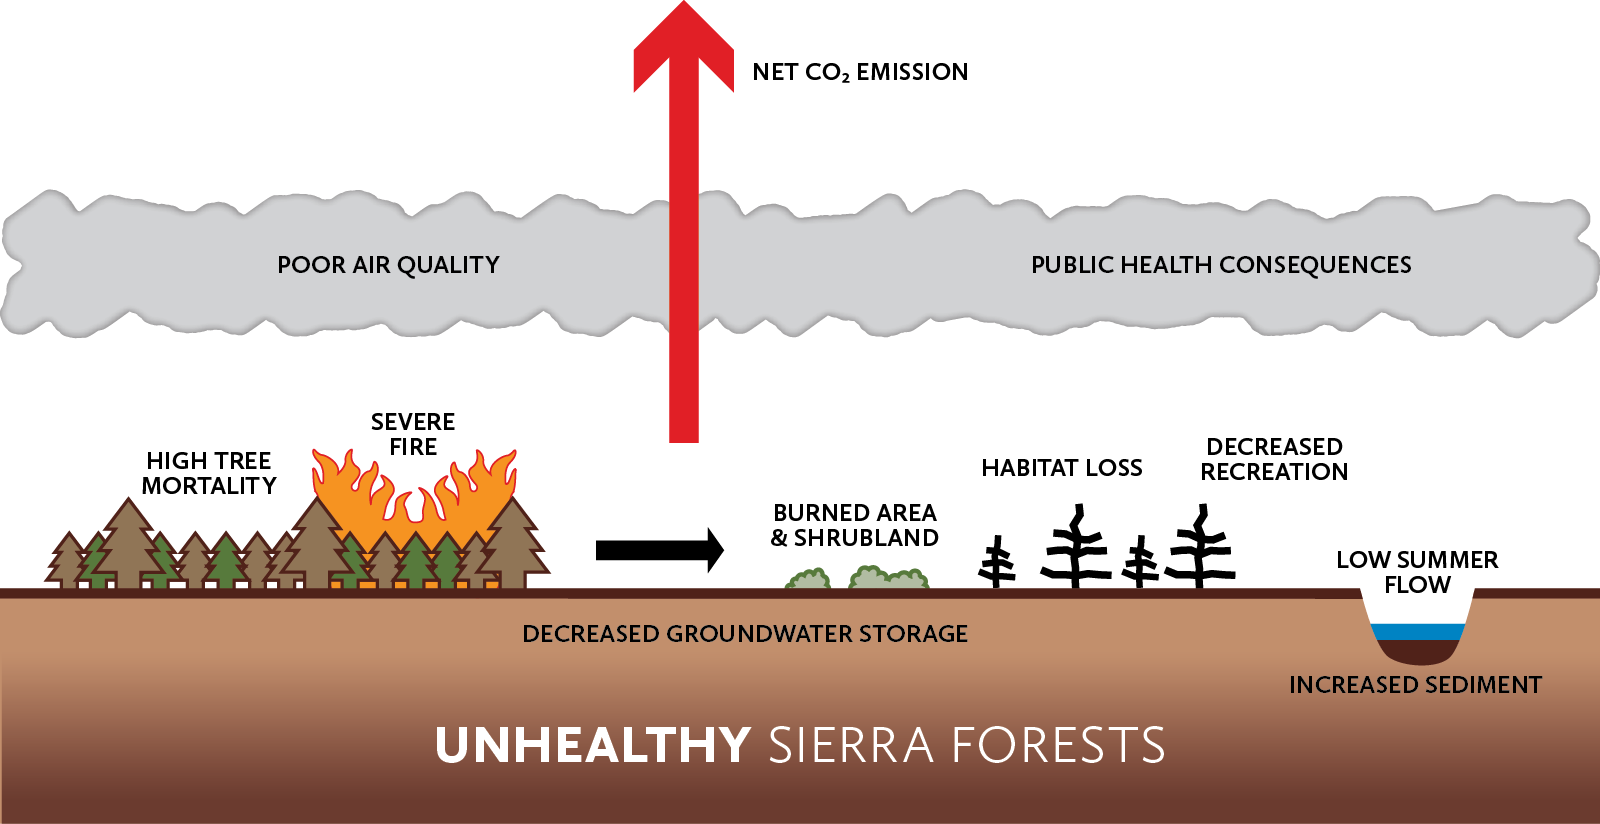 Unhealthy forests are too dense with greater risk for high tree mortality and severe fire. This eventually results in negative impacts: forests converting to burned area and shrubland, habitat loss, decreased recreation, poor air quality, public health consequences, net carbon dioxide emission, decreased groundwater storage, increased sedimentation in rivers, and low summer water flow.